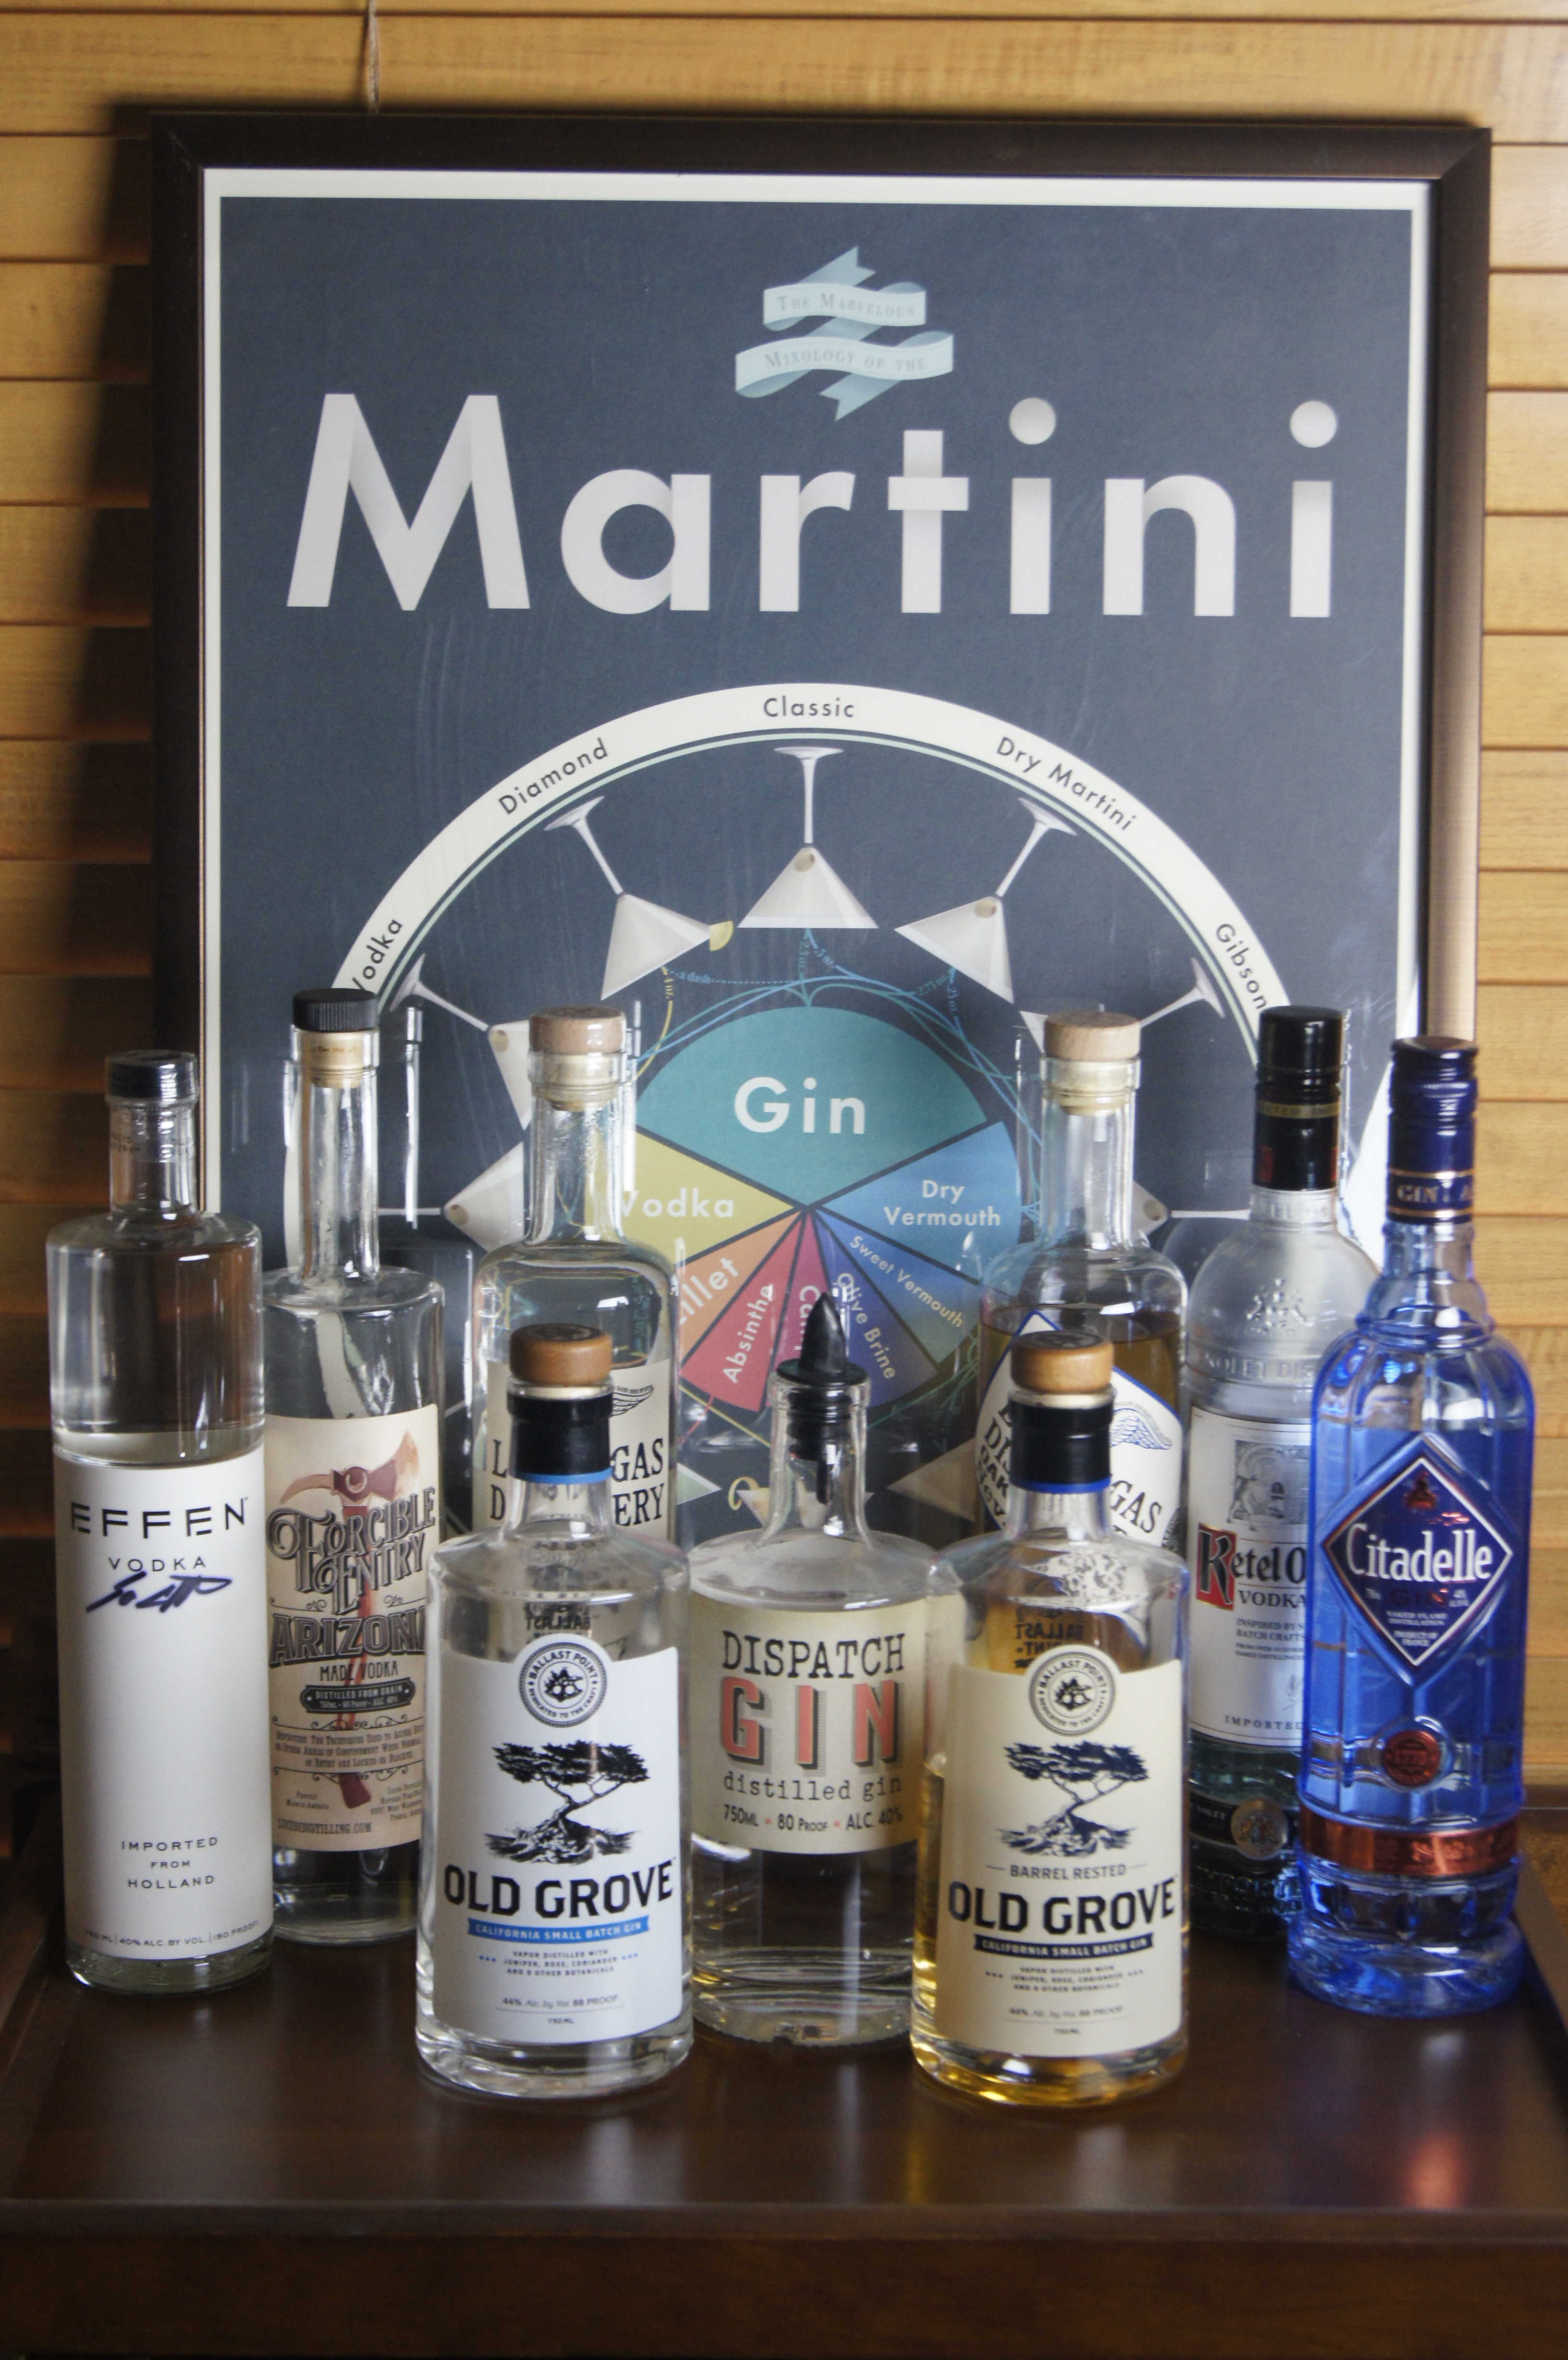 A martini poster behind a selection of 12 various vodka and gin bottles.